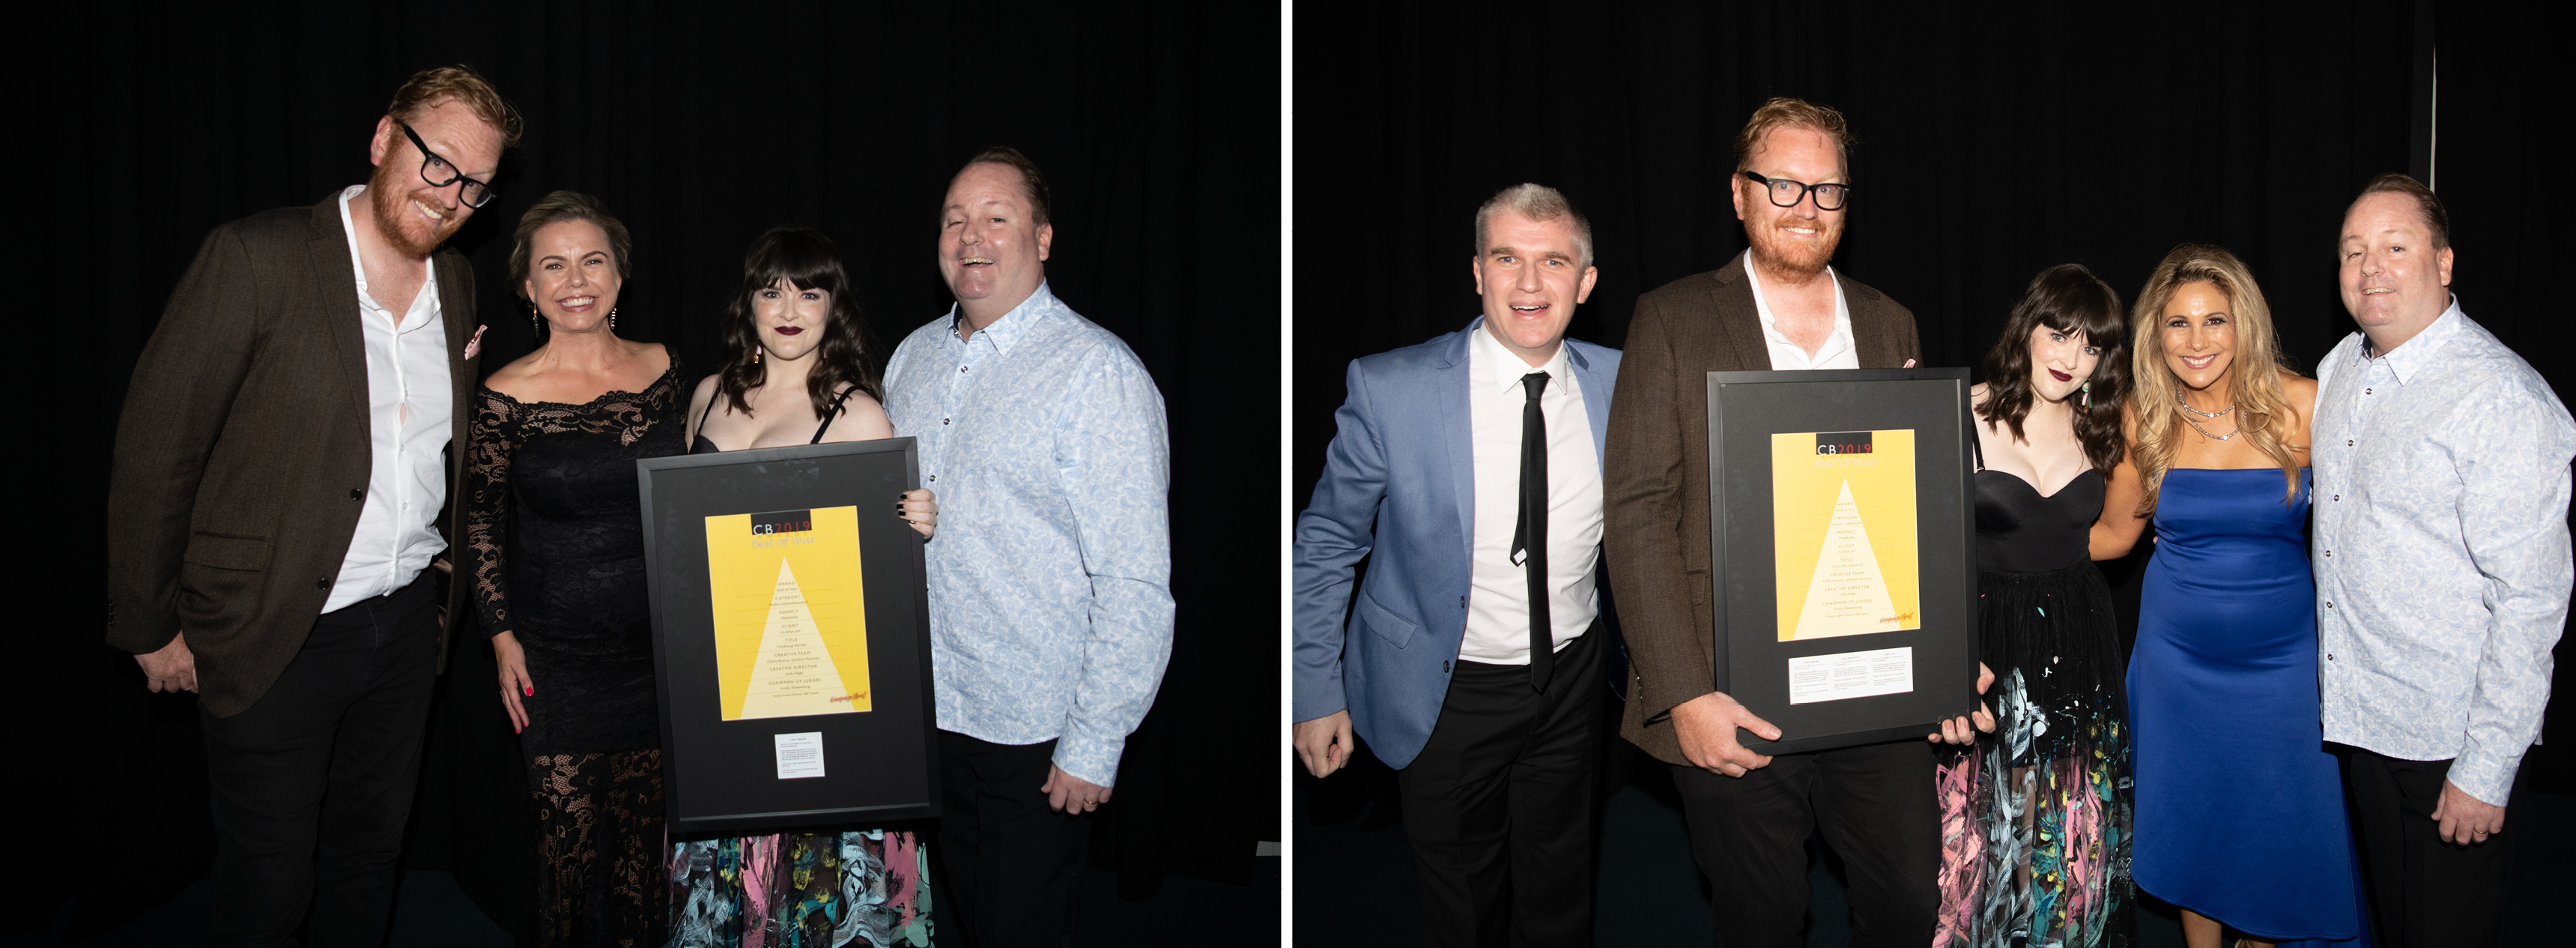 Siren Awards announces finalists for Best Radio Ad of 2019: Meerkats leads with 4, JWT Perth a Finalist in Campaign, Cue Sound with 2 in Craft